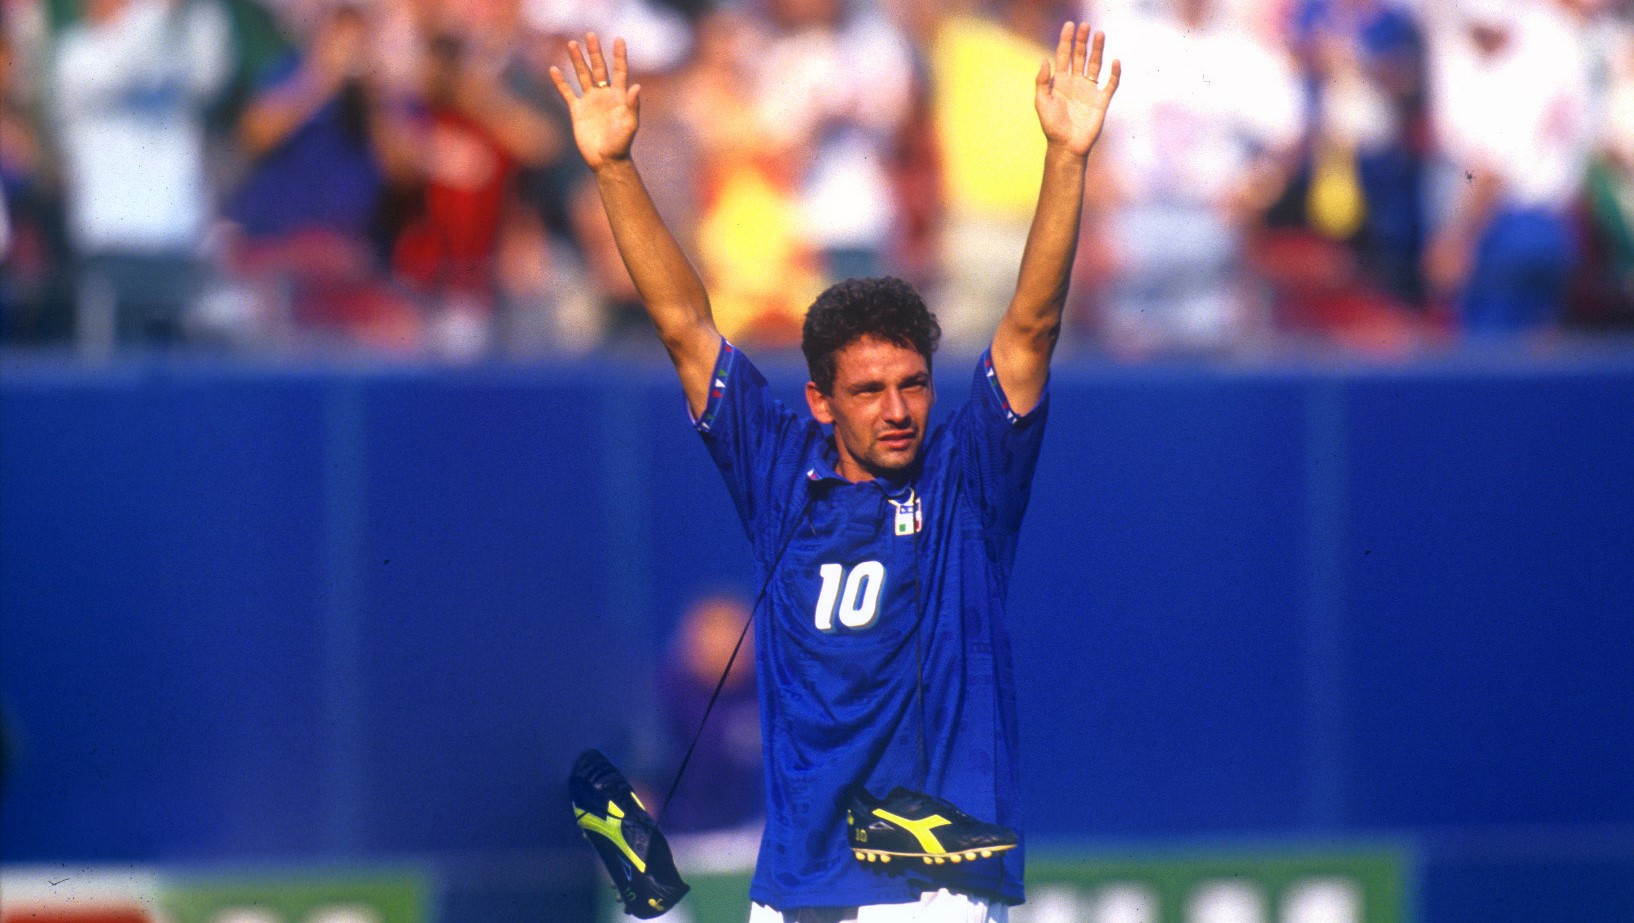 Baggio roberto e riva usa94 as  copia  2